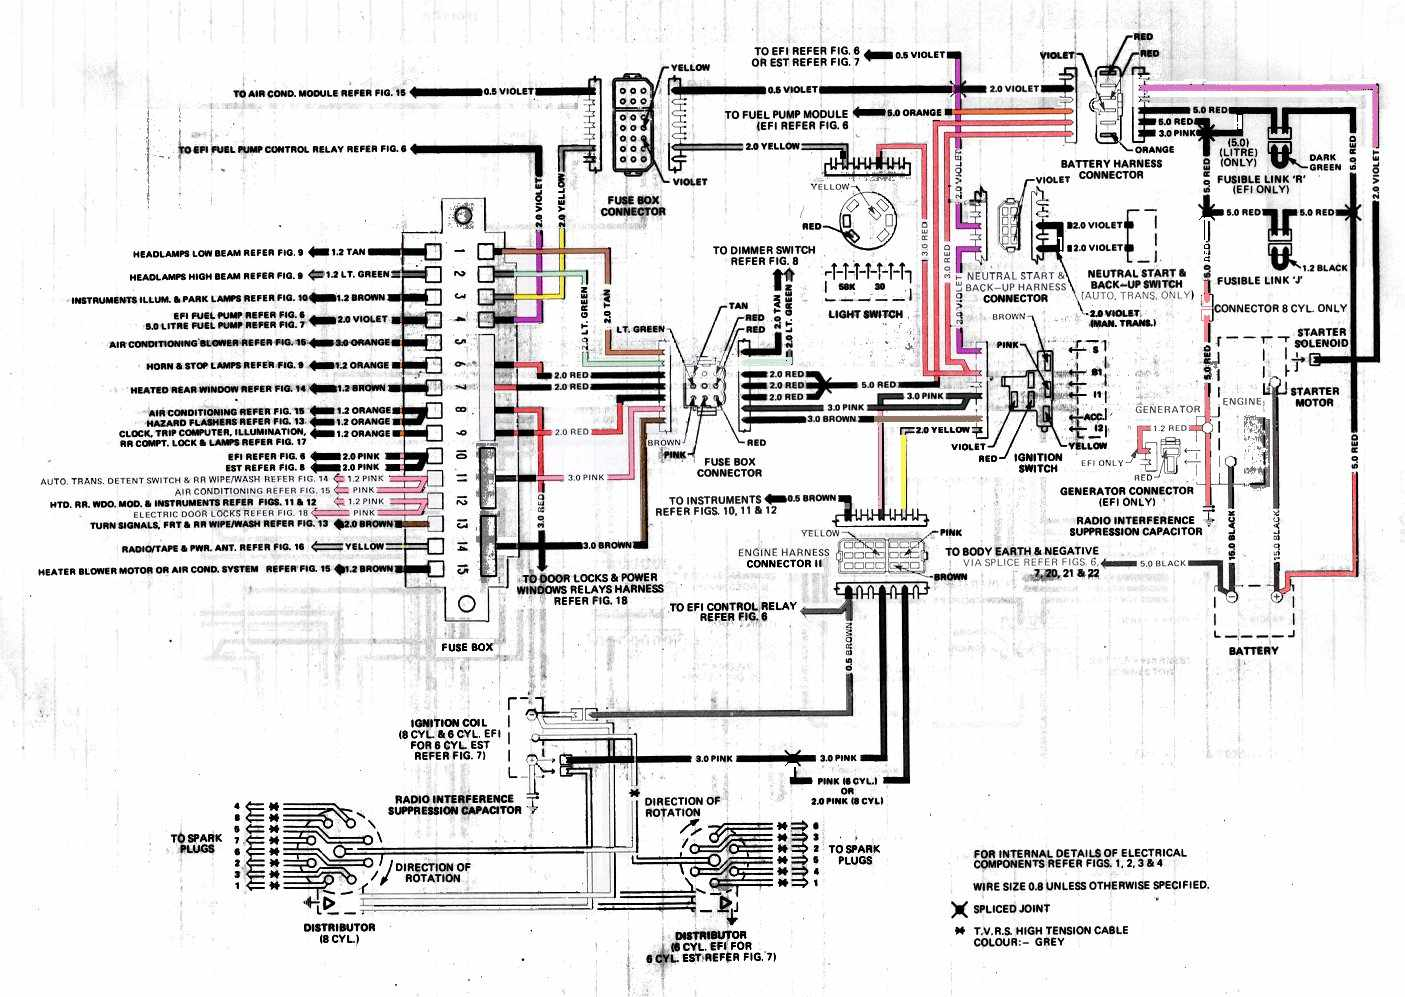 vz headlight wiring diagram 1999 toyota 4runner alternator holden vk commodore generator electrical